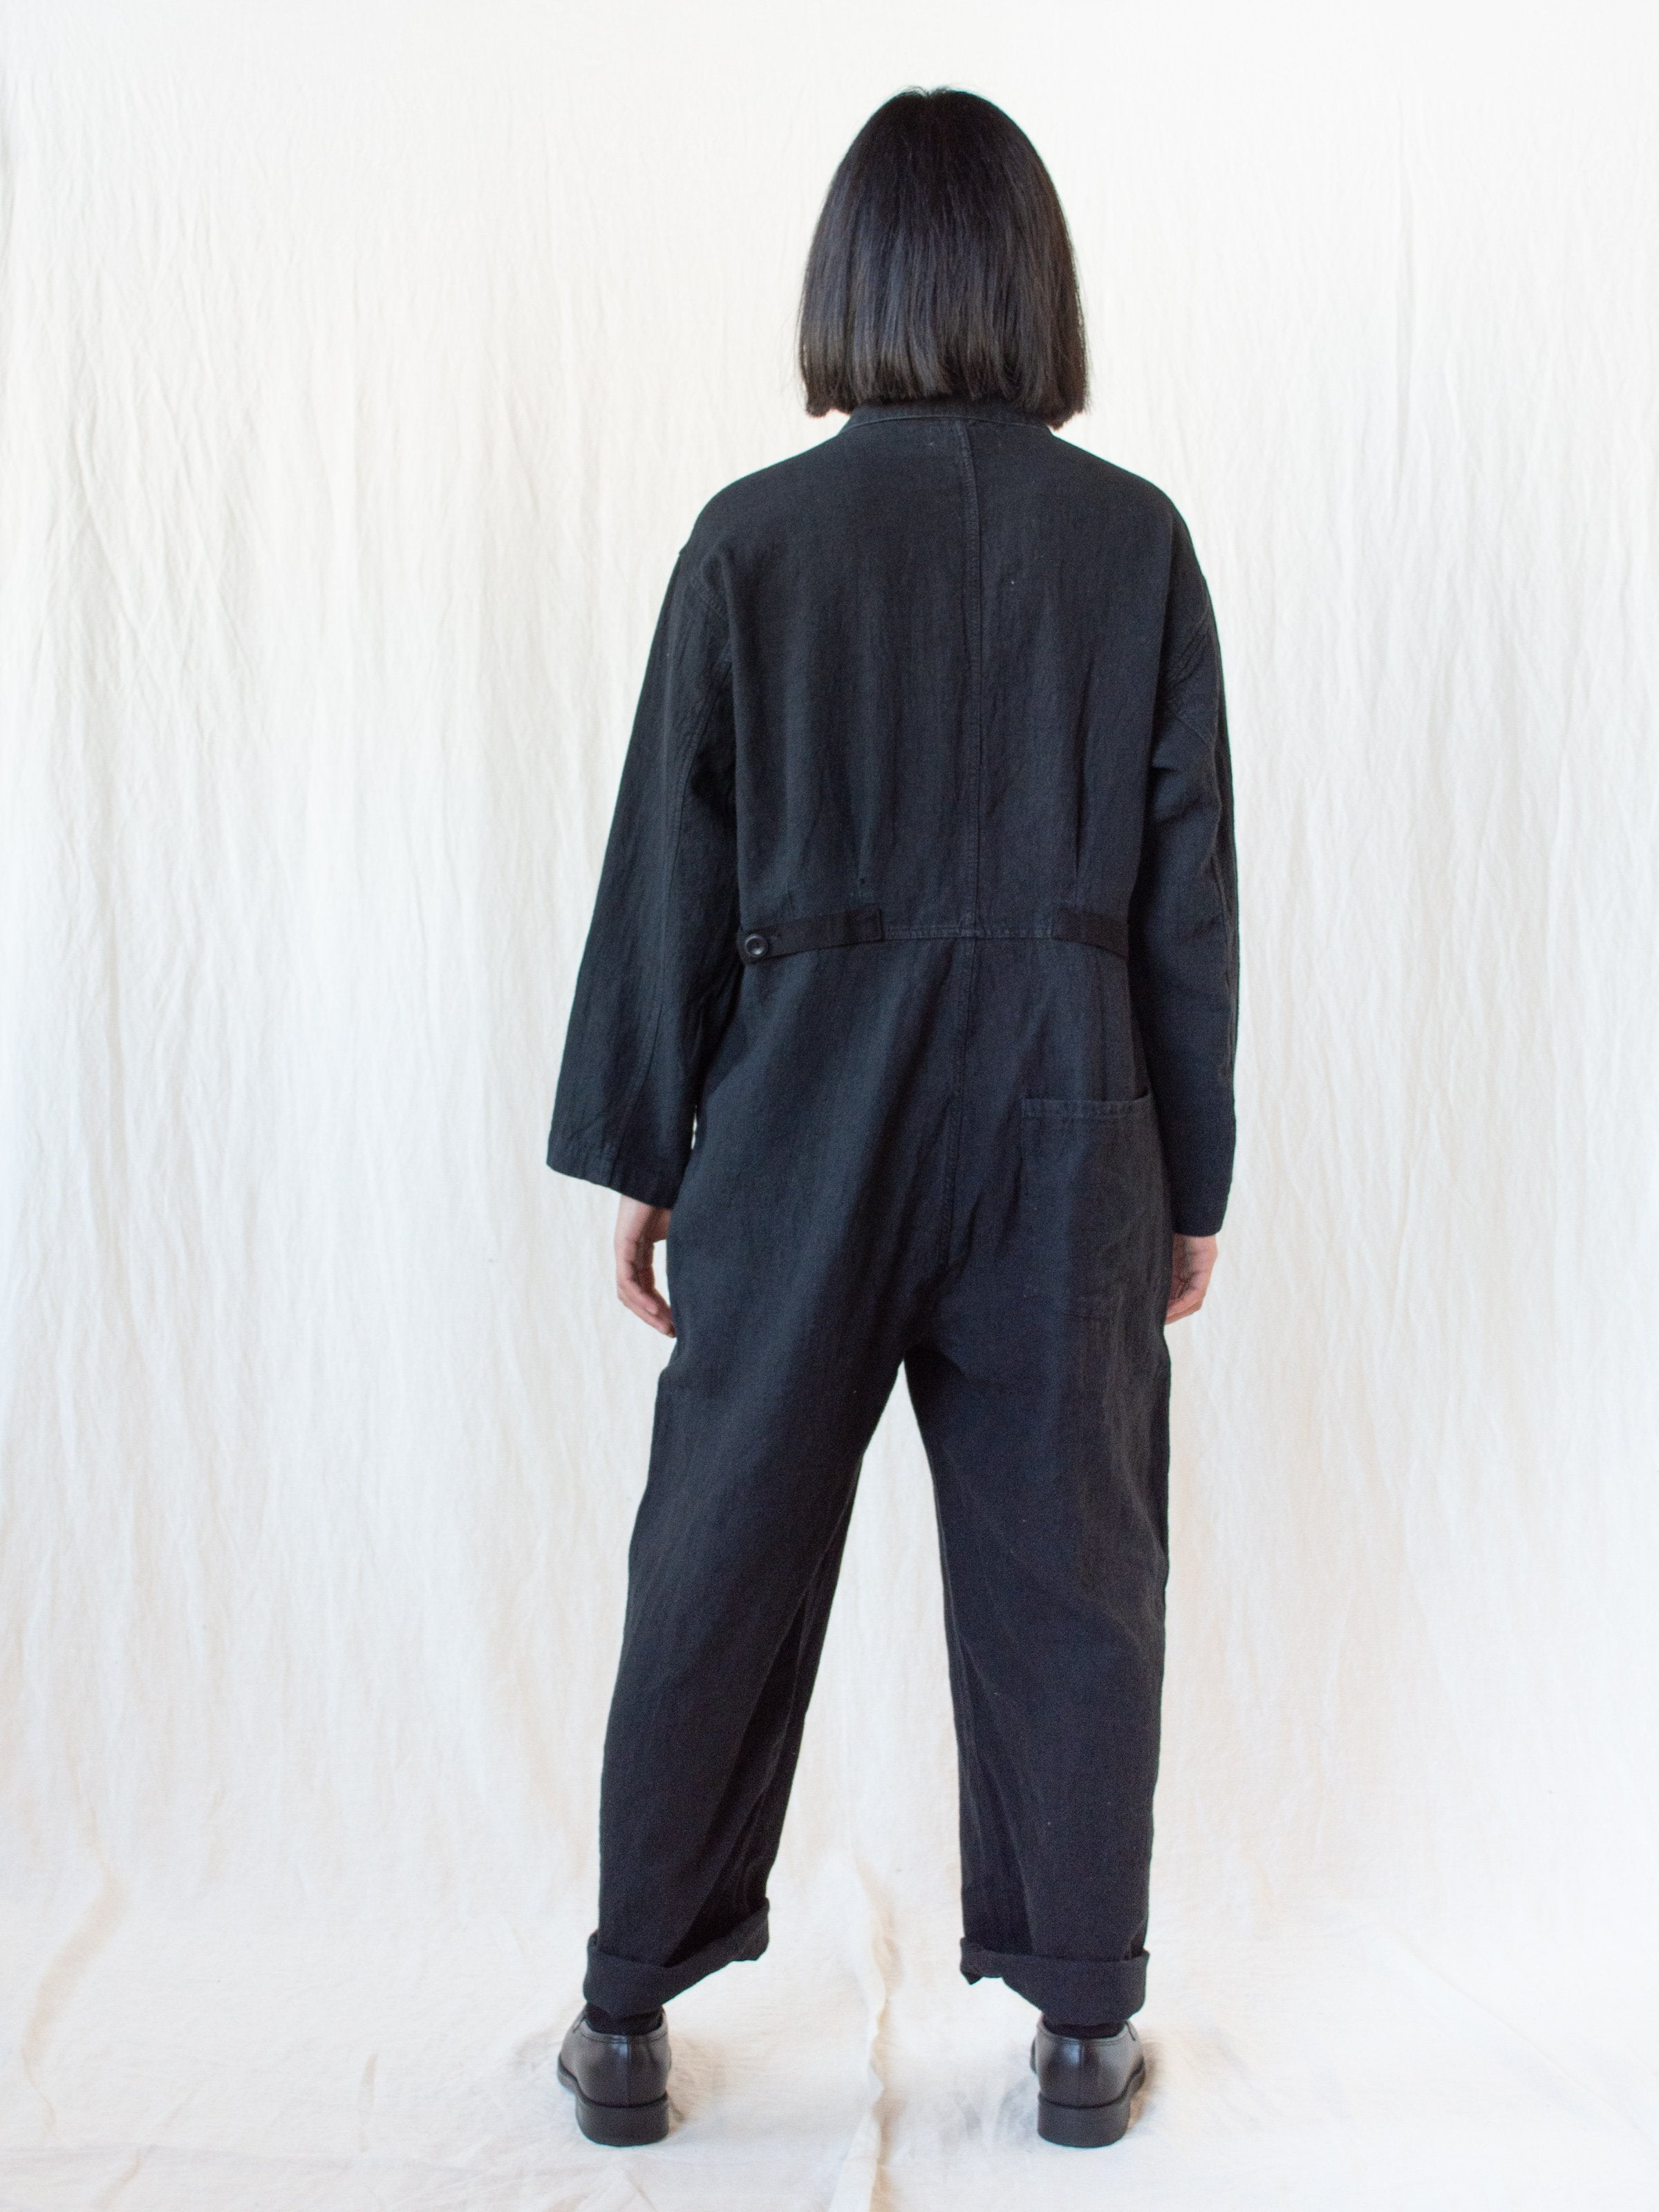 Namu Shop - Ichi Antiquites Linen Jumpsuit - Black